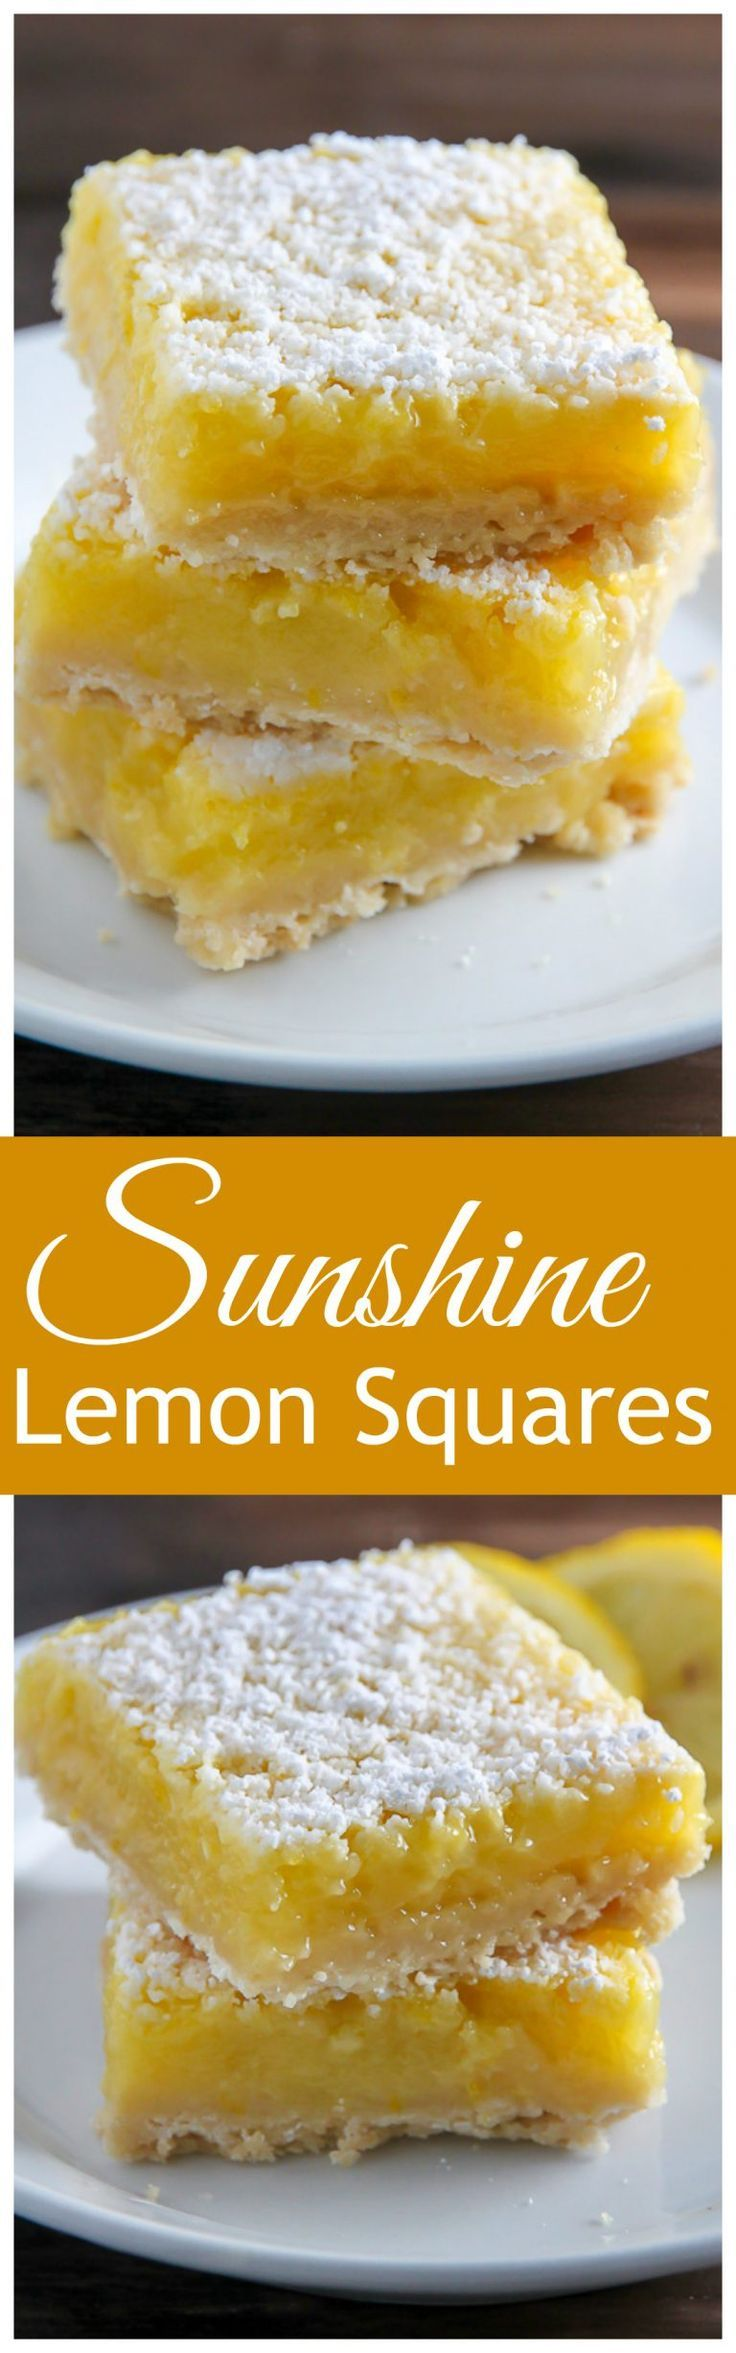 Sunny Lemon Squares feature a crunchy coconut crust creamy lemon filling and a sprinkle of sweet sugar on top YUM